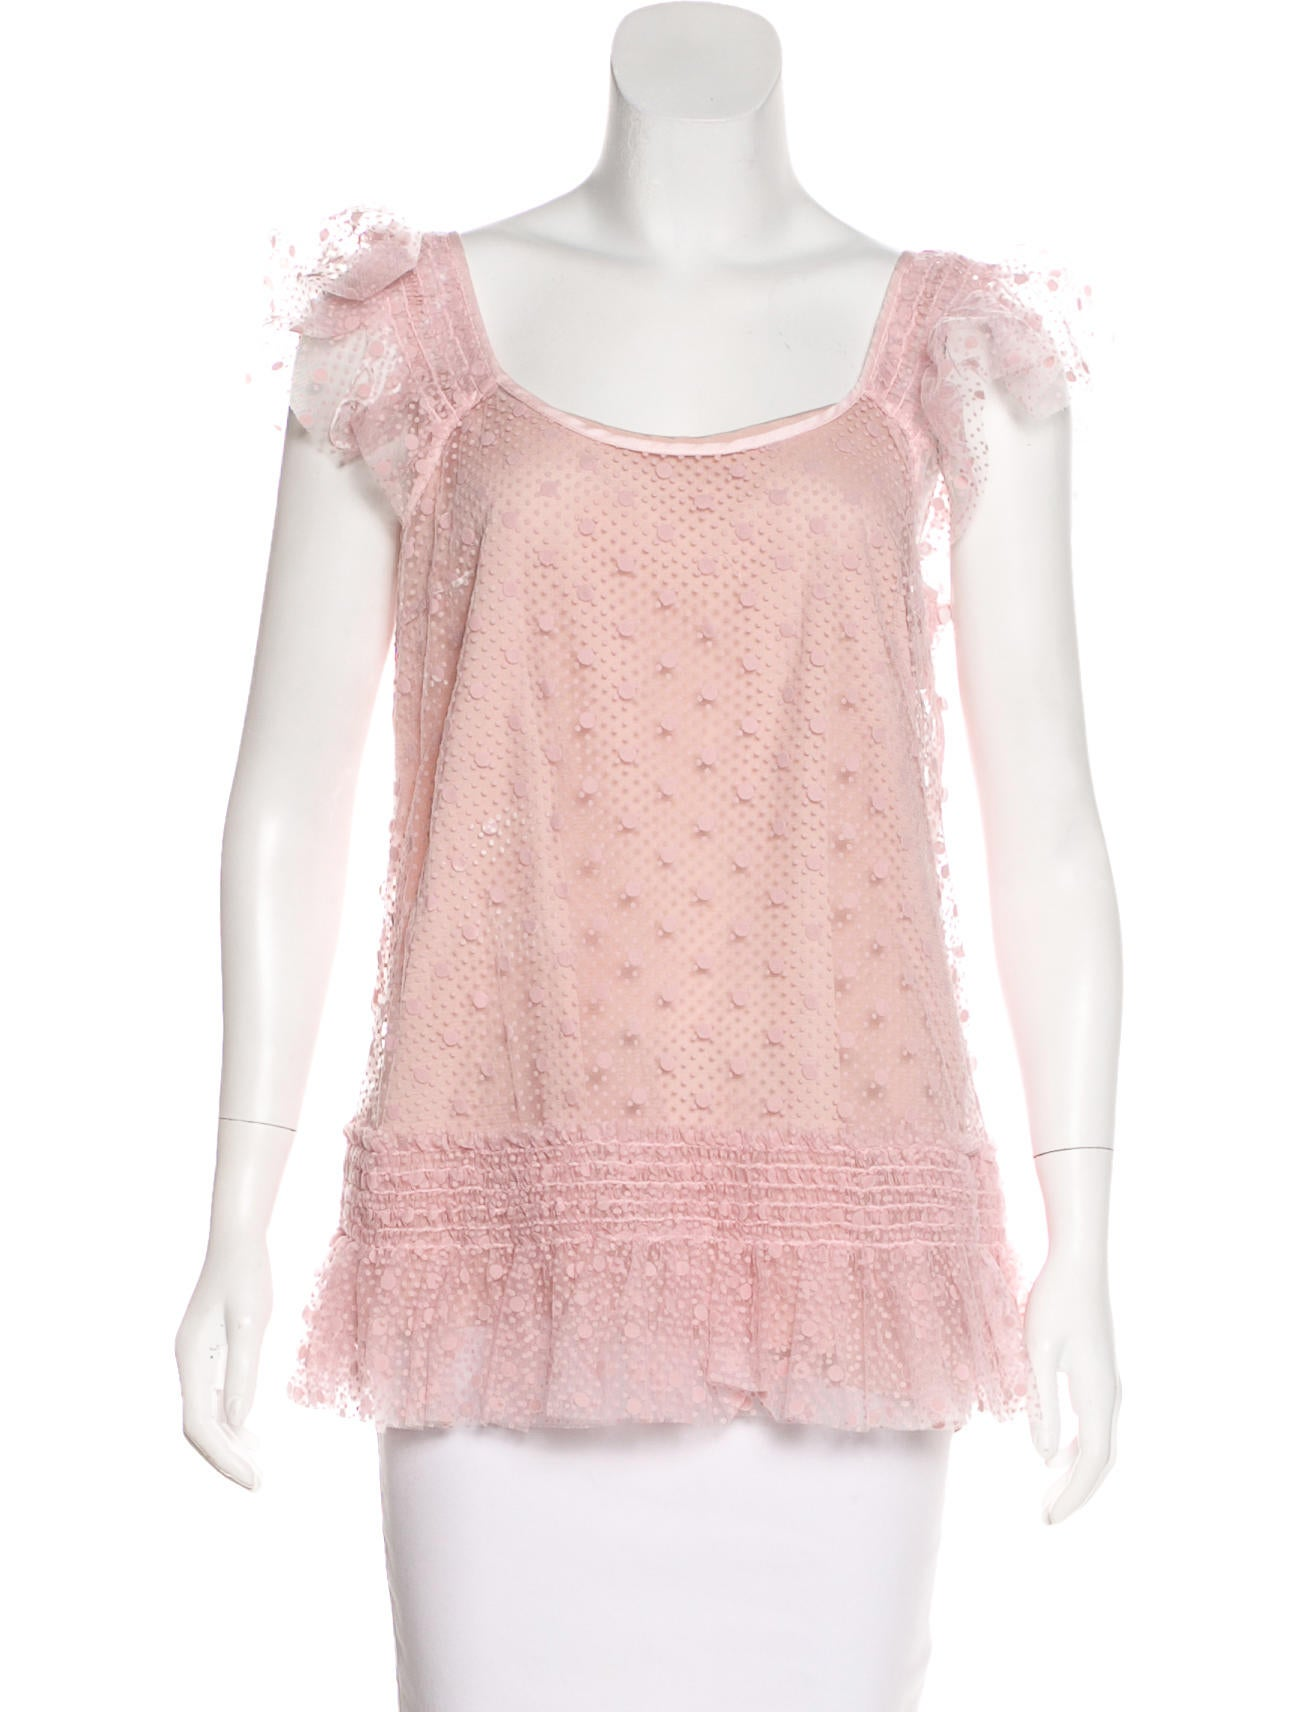 Free Shipping Amazing Price Outlet With Paypal Order Online Pink mesh shirt with ruffles Red Valentino BCaNGryRC2